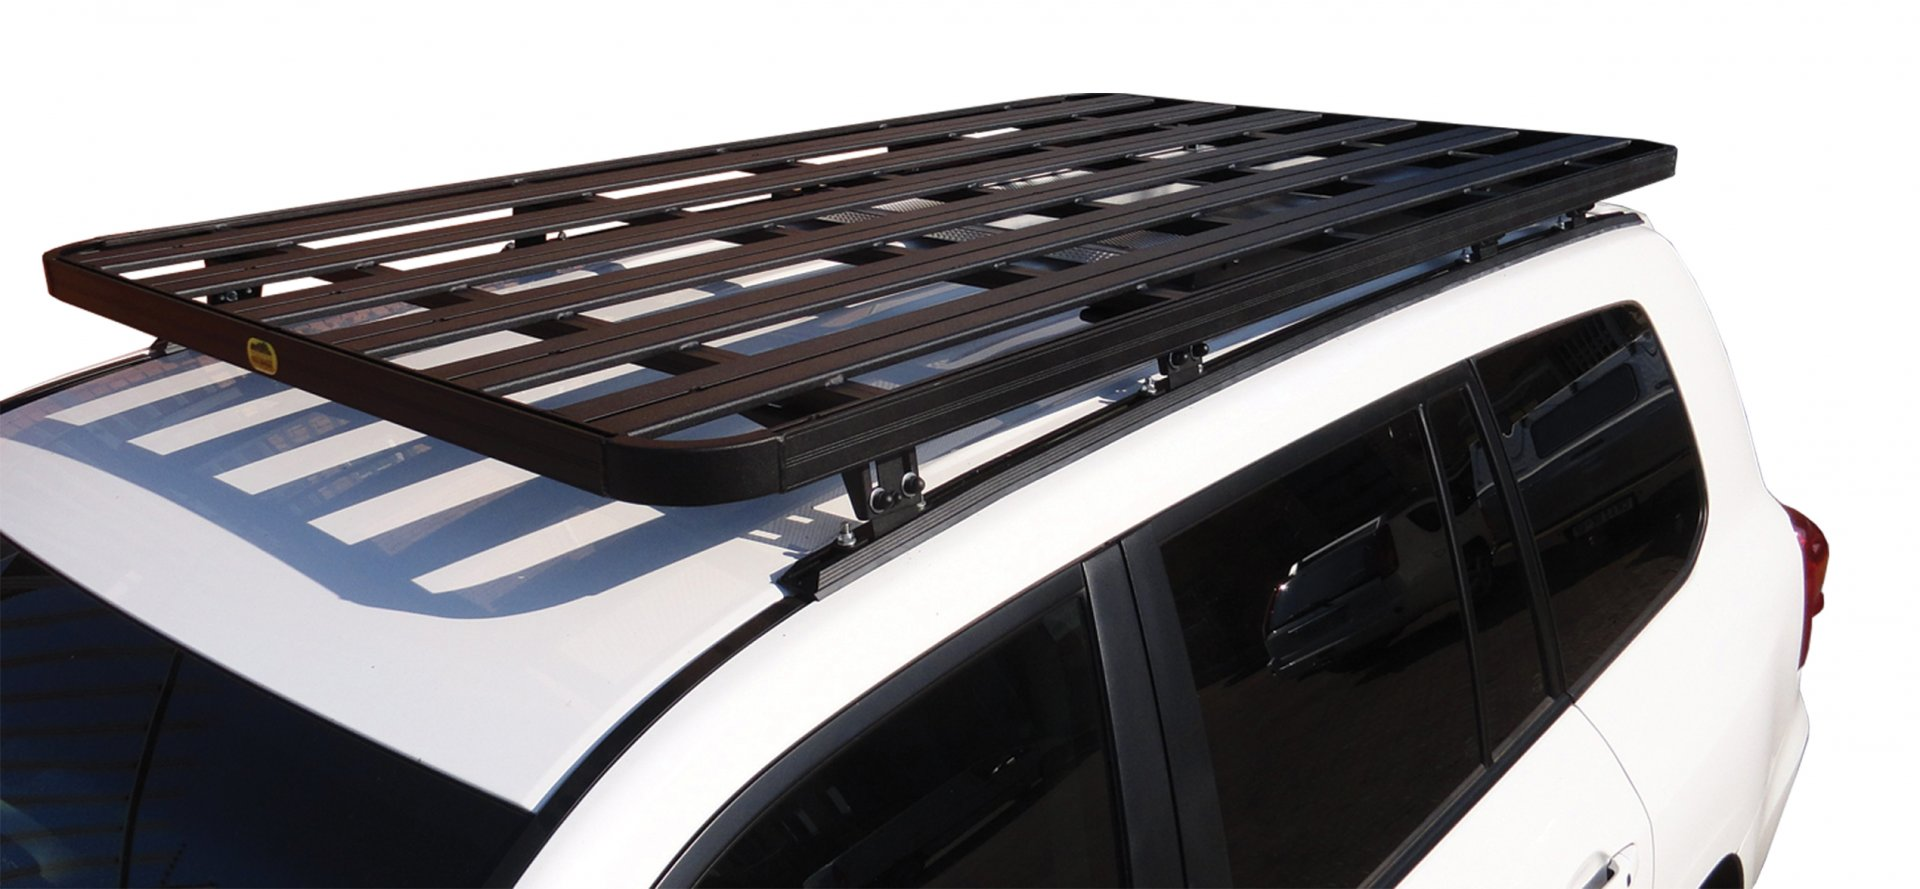 RR90-LC200-Roof-rack-4-deep-etched.jpg